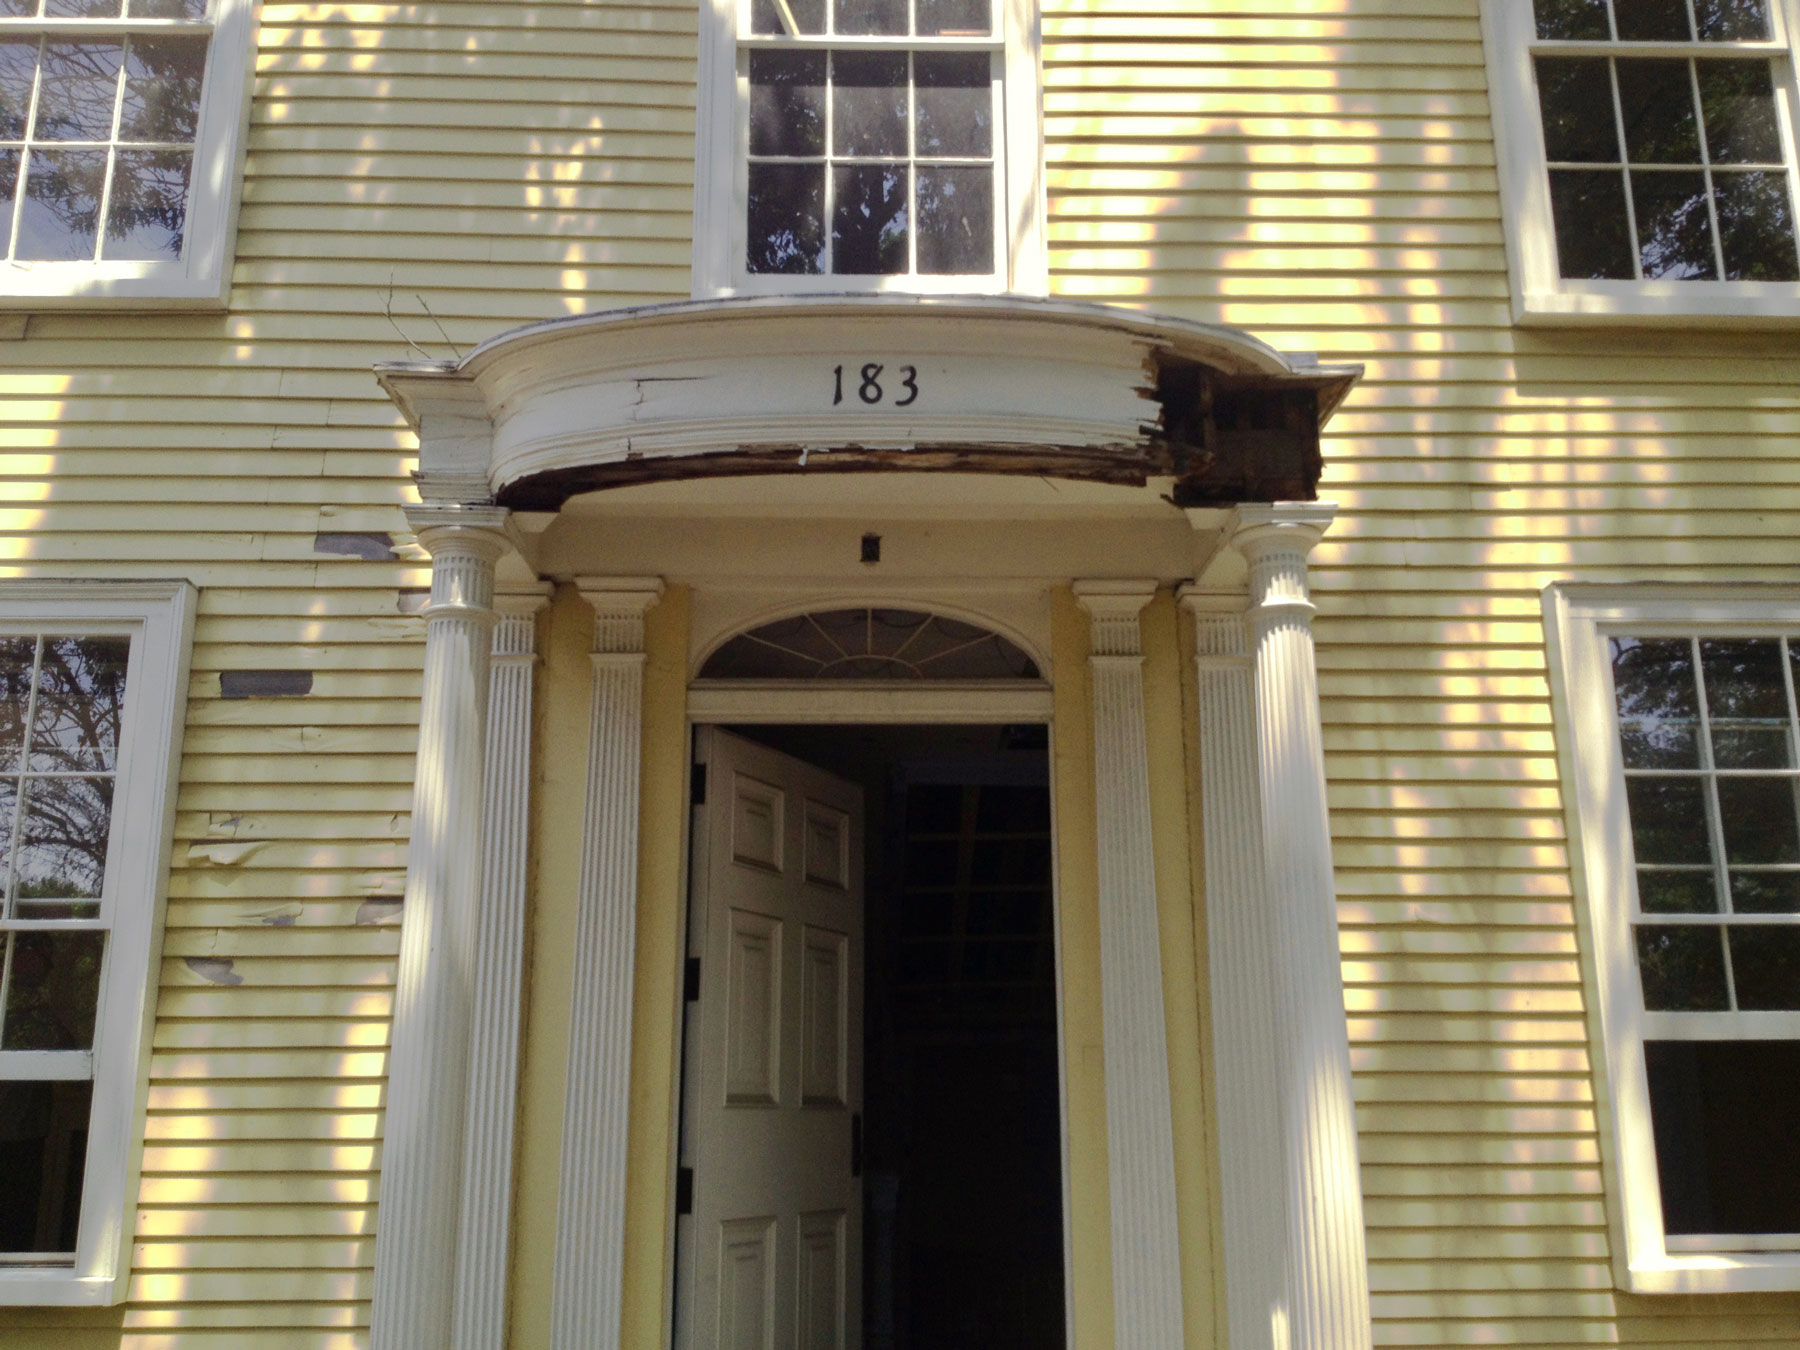 Dillaway Thomas House Doorway renovation 183 Roxbury Street, Roxbury Crossing, MA . Bonding with clients over historical finishes